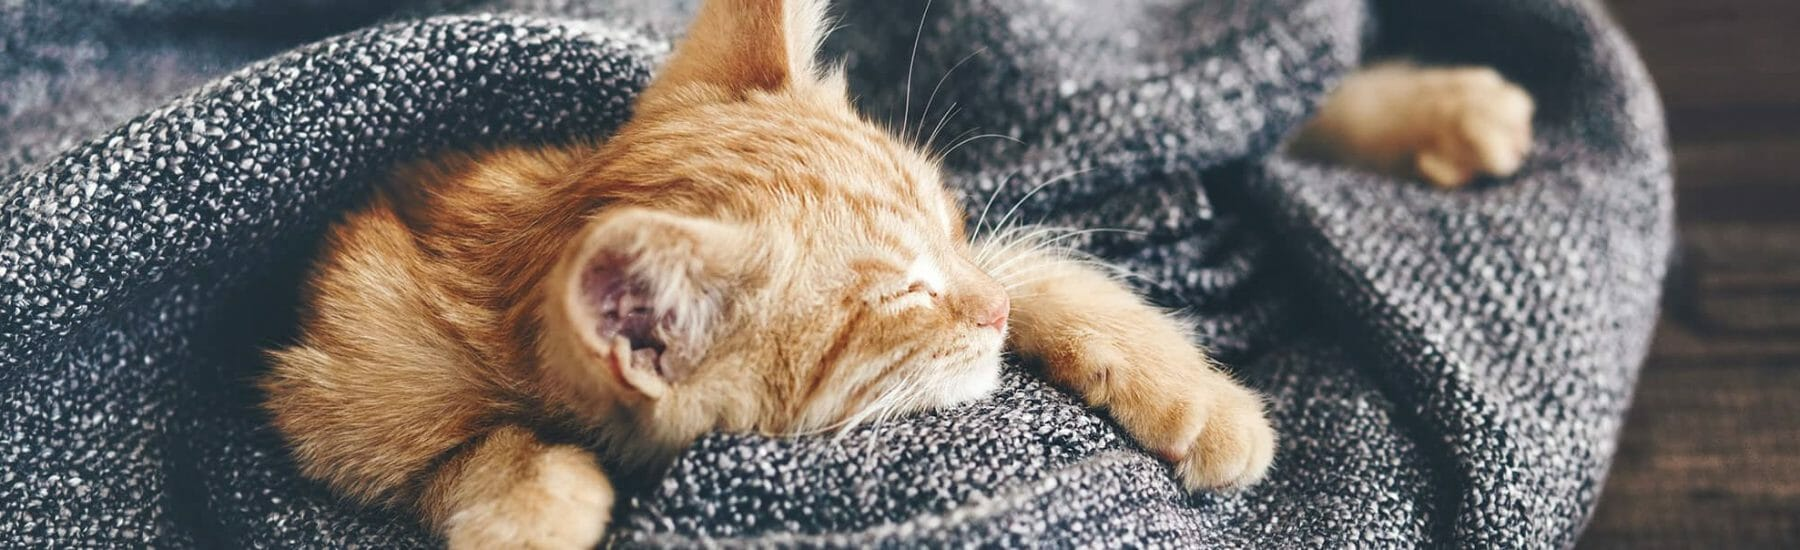 Small Ginger Kitten Sleeping in a pile of blankets